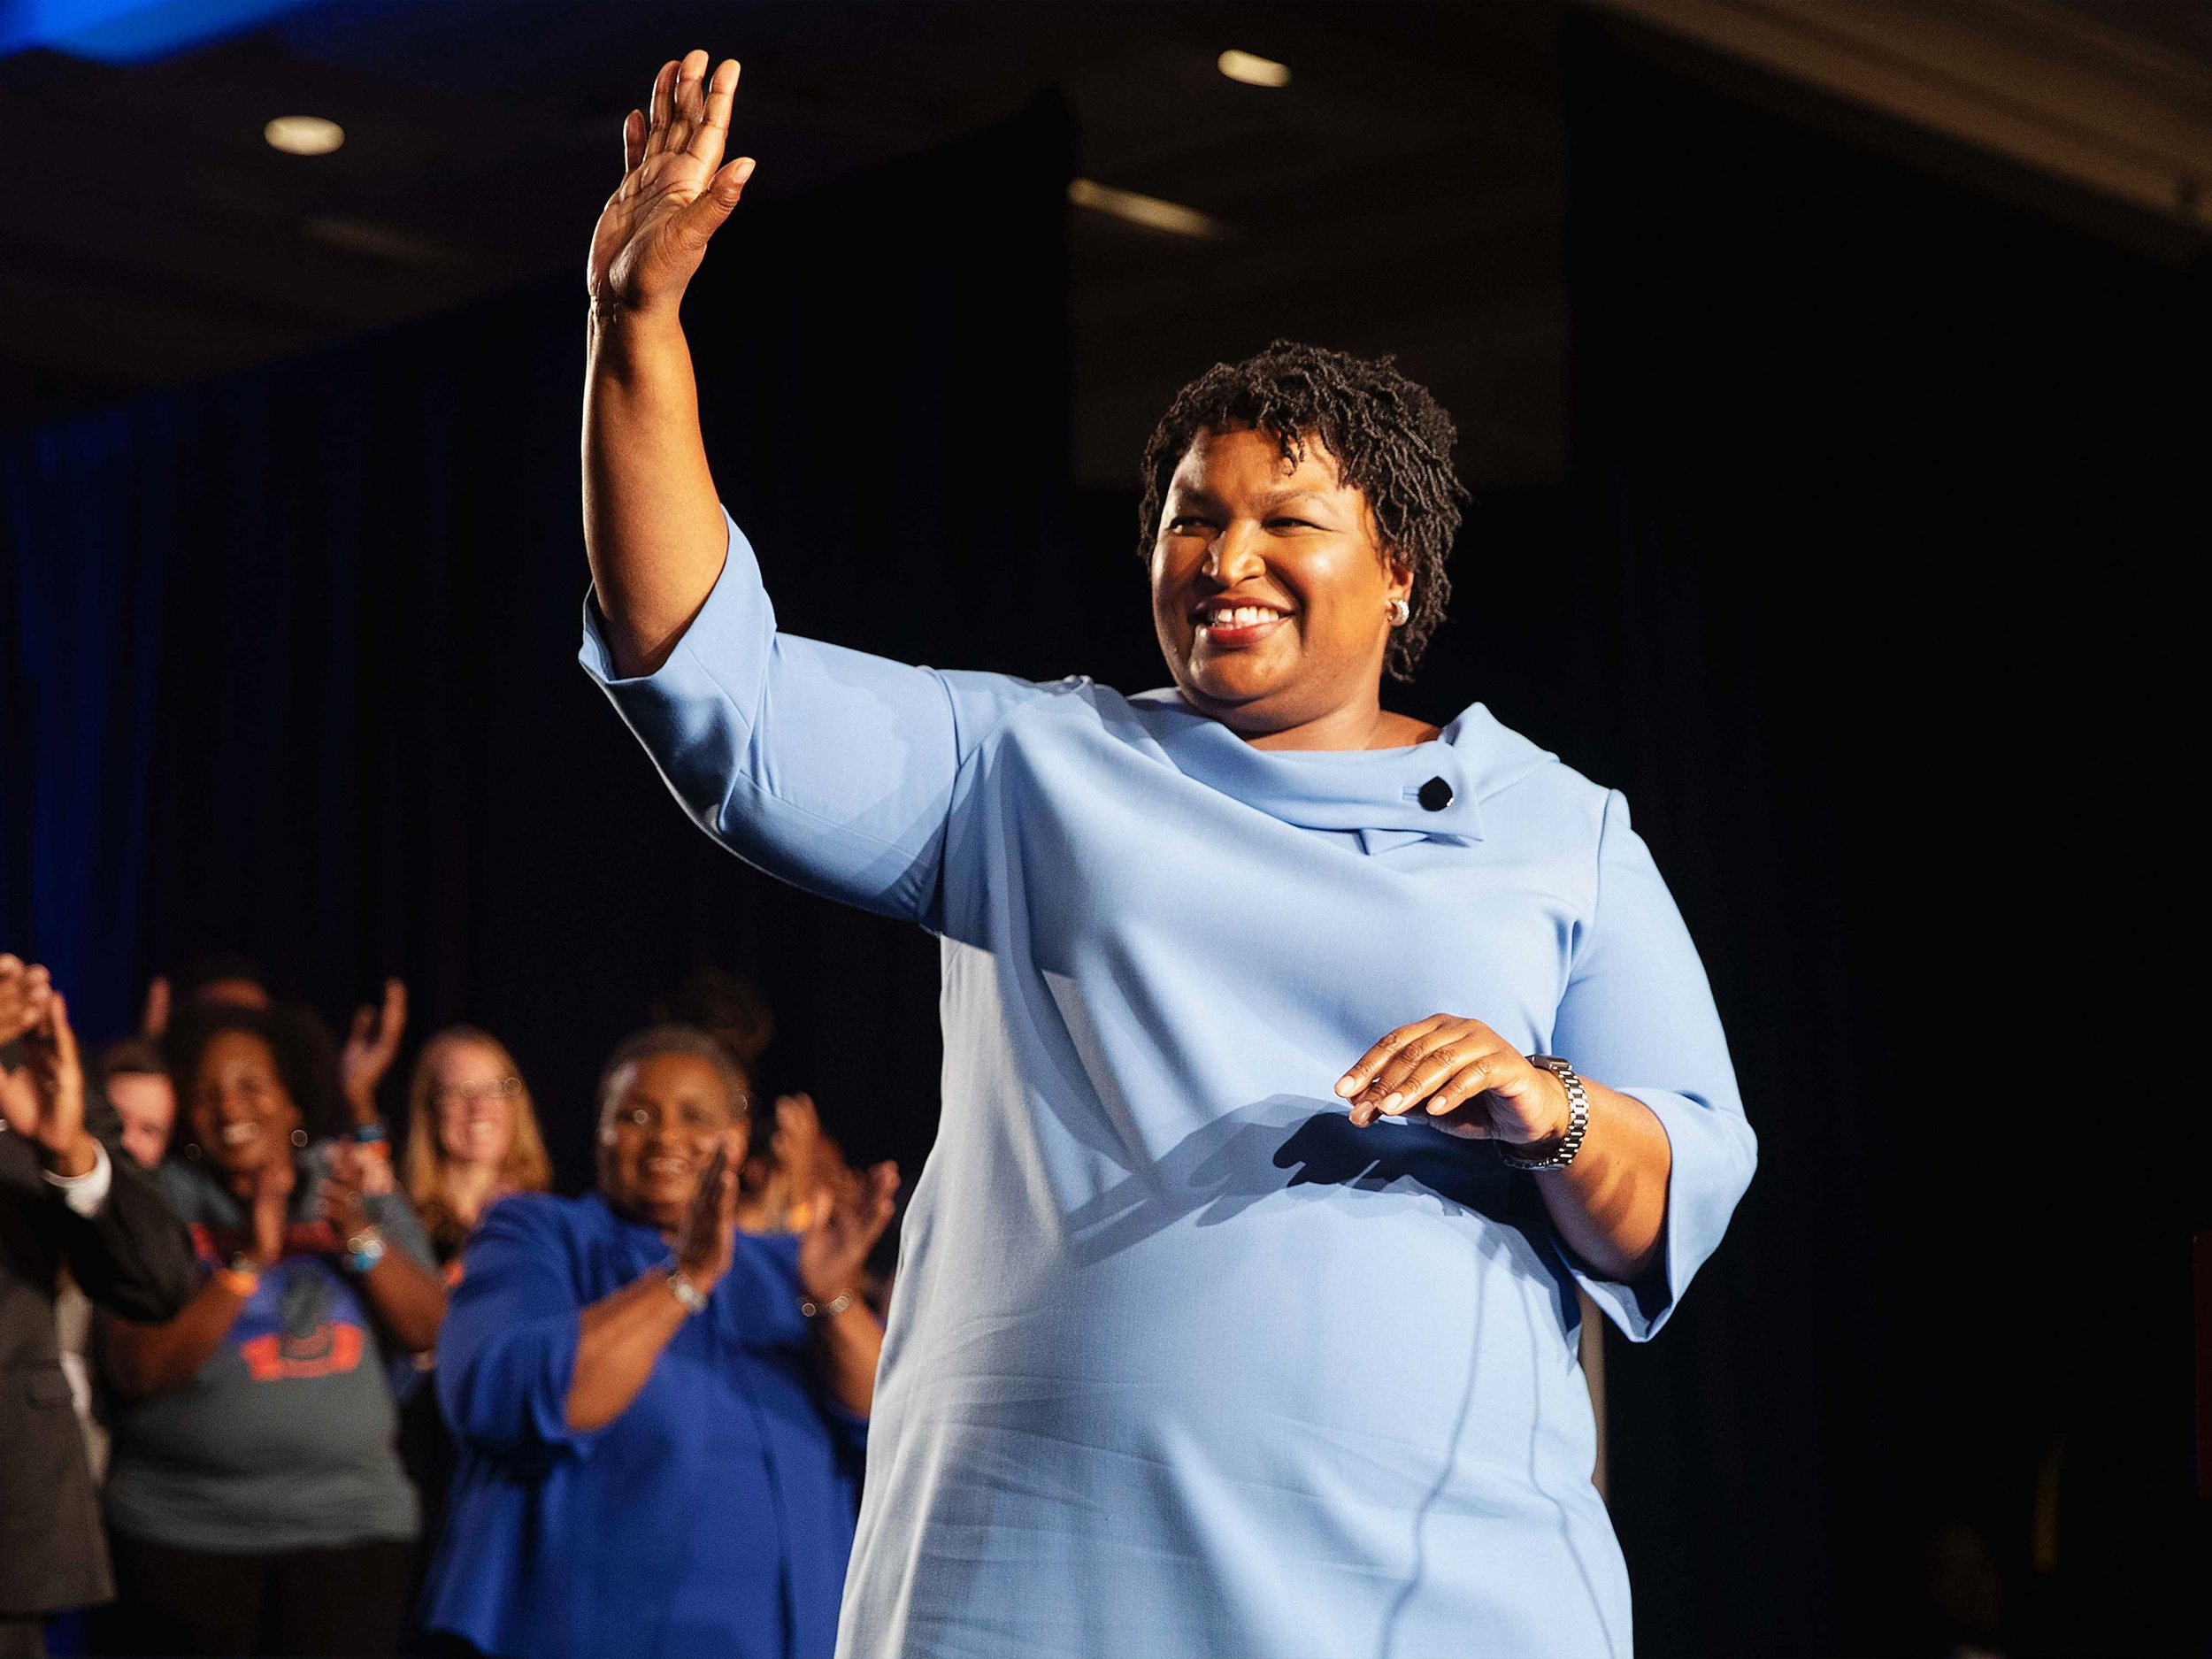 Without Georgia, The Republicans Have No Path To The Presidency. - Stacey Abrams' historic run for Governor of Georgia validated our belief that Georgia is the most flippable red state in the country, and one of the most important battlegrounds in the nation.